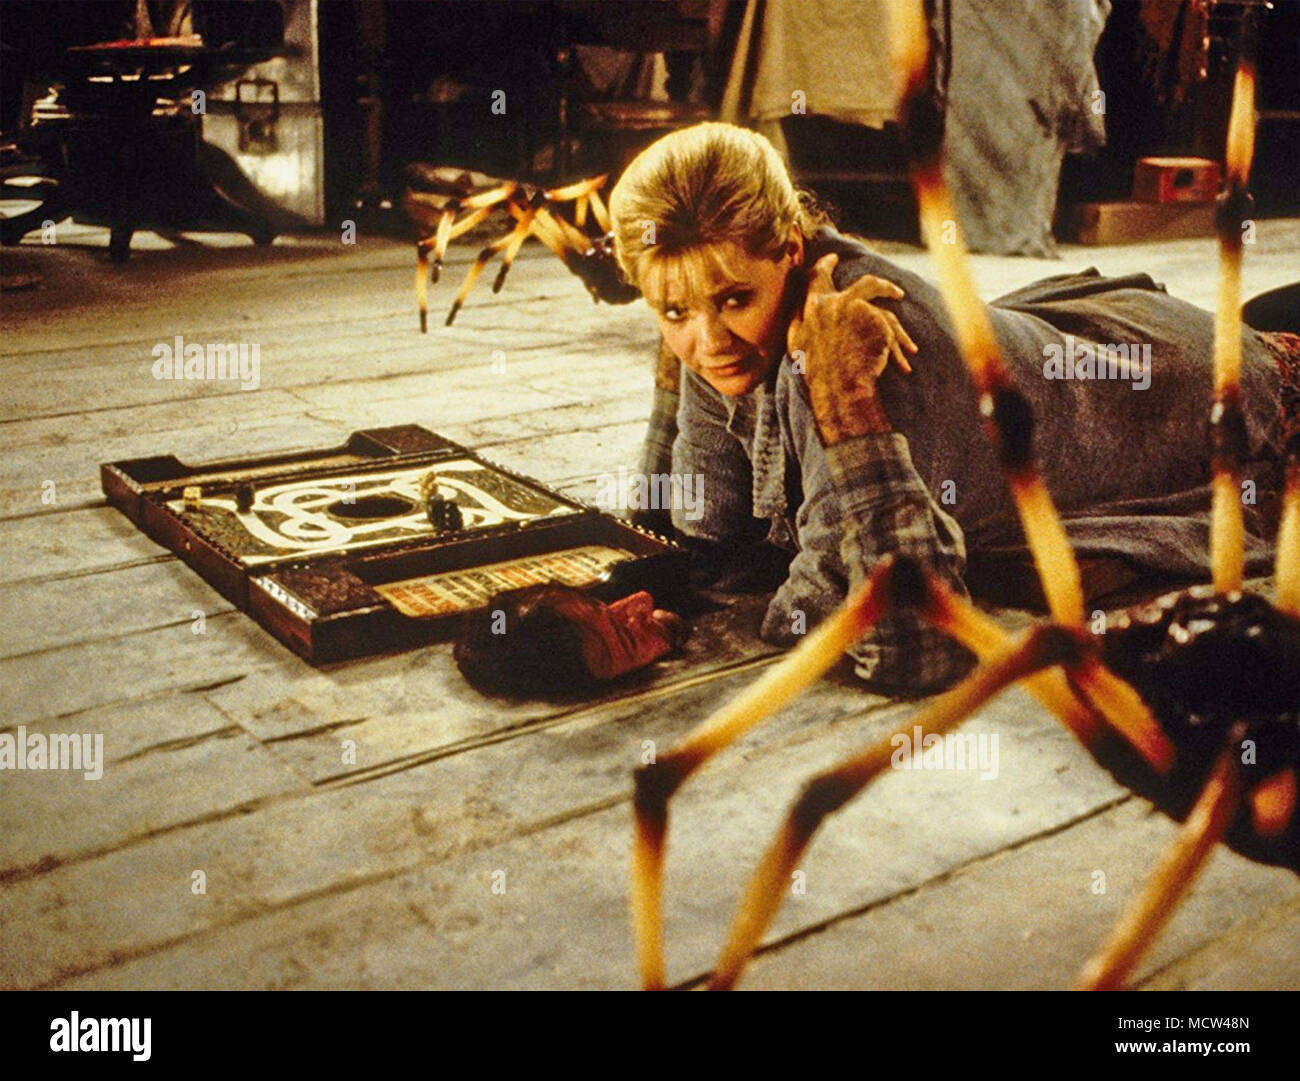 JUMANJI 1995 TriStar Pictures film with Bonnie Hunt - Stock Image